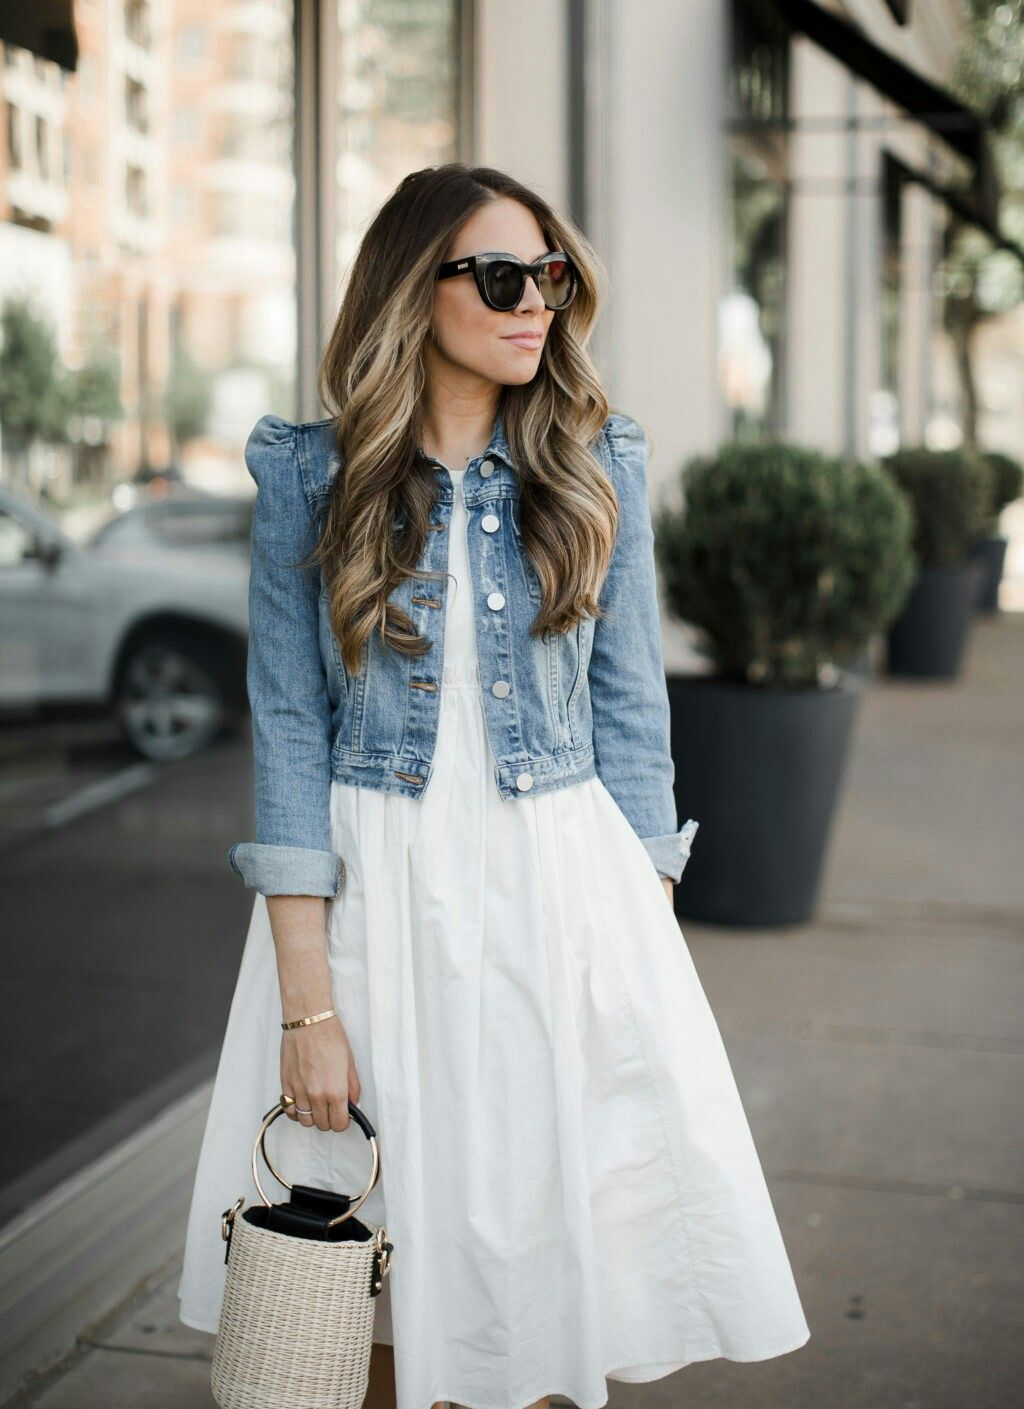 Pin By Patricia Montes De Oca On Outfits Summer Dress Outfits Denim Jacket With Dress Summer Dresses [ 1409 x 1024 Pixel ]